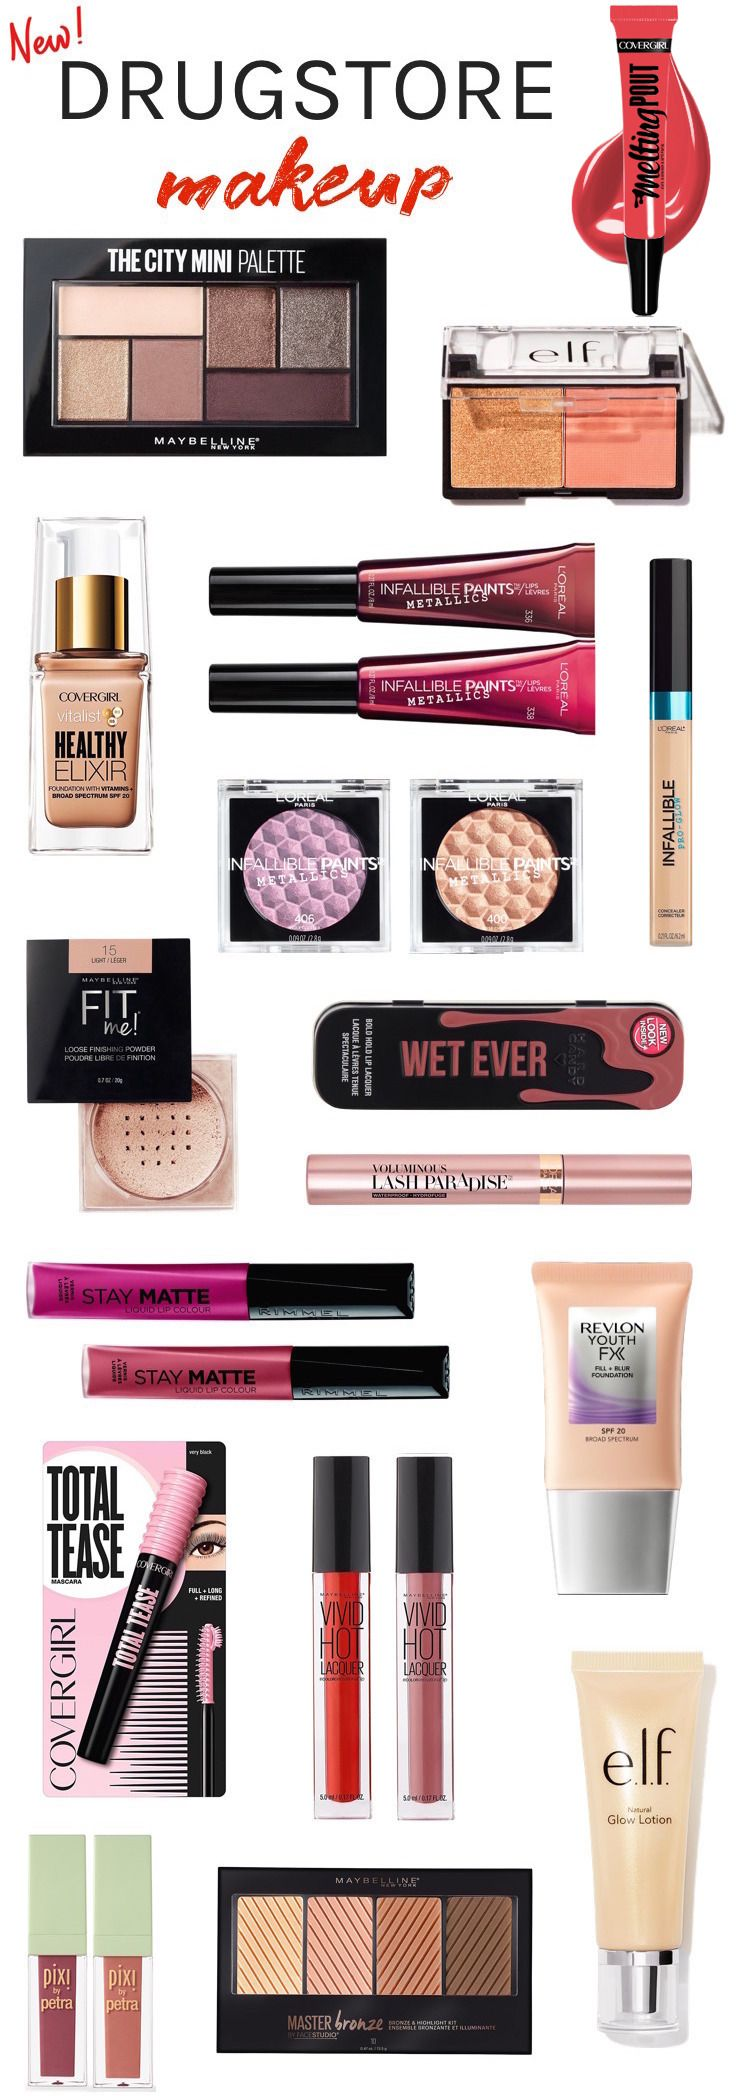 New drugstore makeup summer 2017 | Want to know what's new in the drugstore beauty aisles? Check out the latest launches that you'll want to get your hands on...and don't be surprised if you want them all!